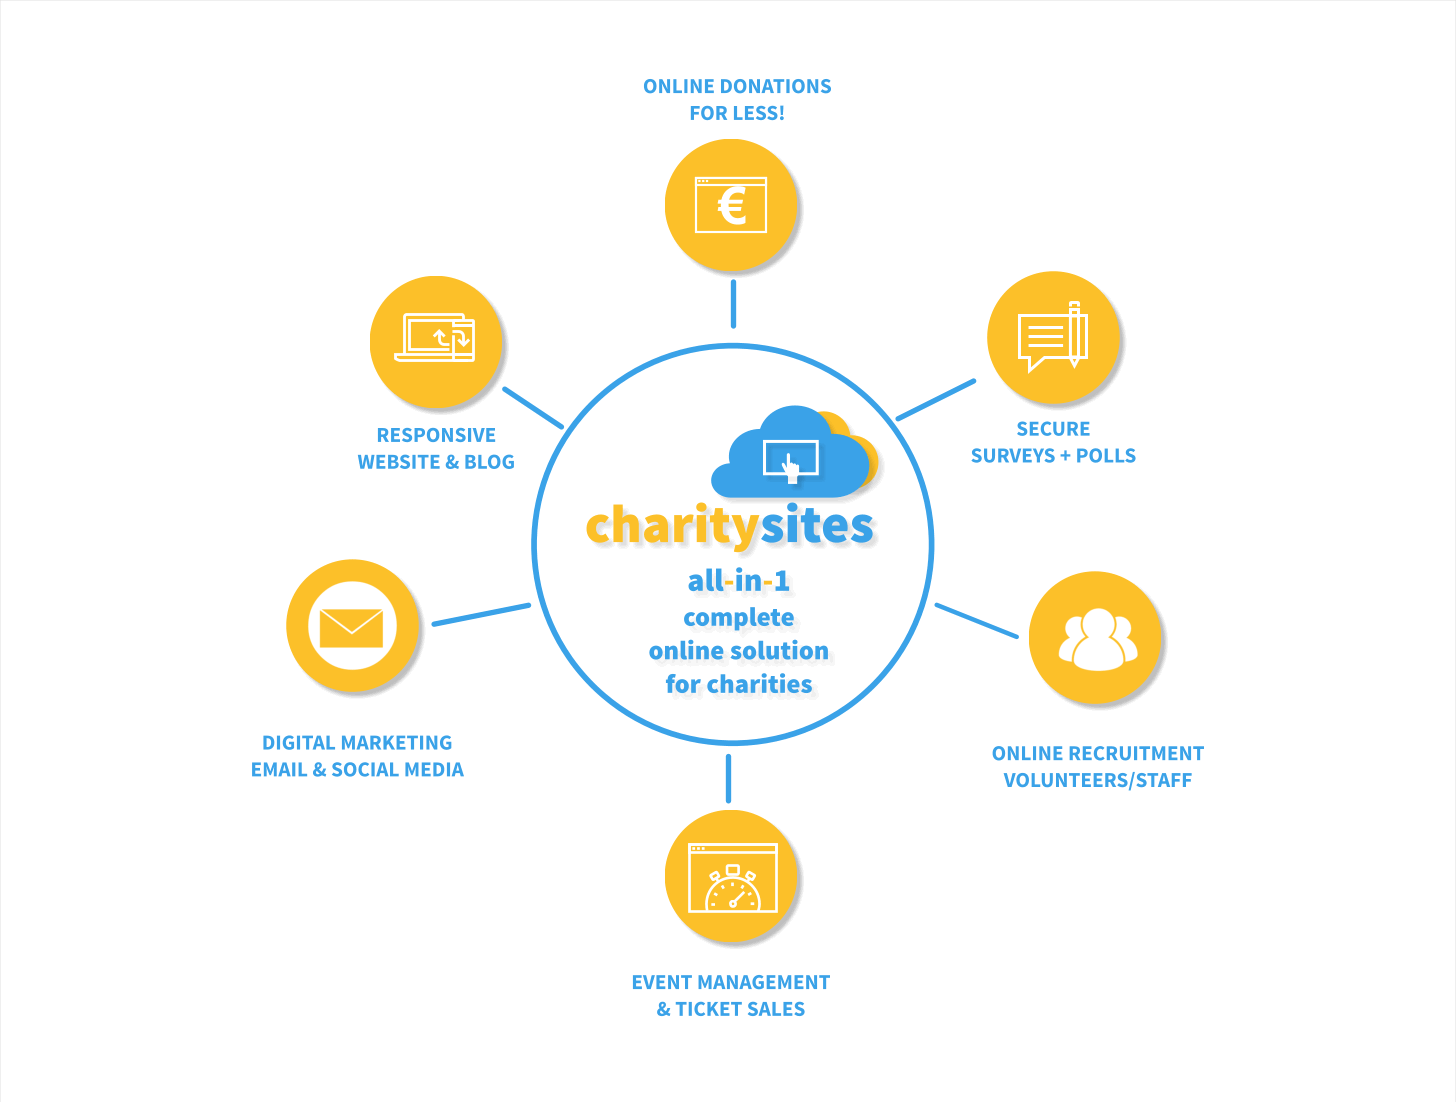 Charitysites all in 1 complete online solution for charities